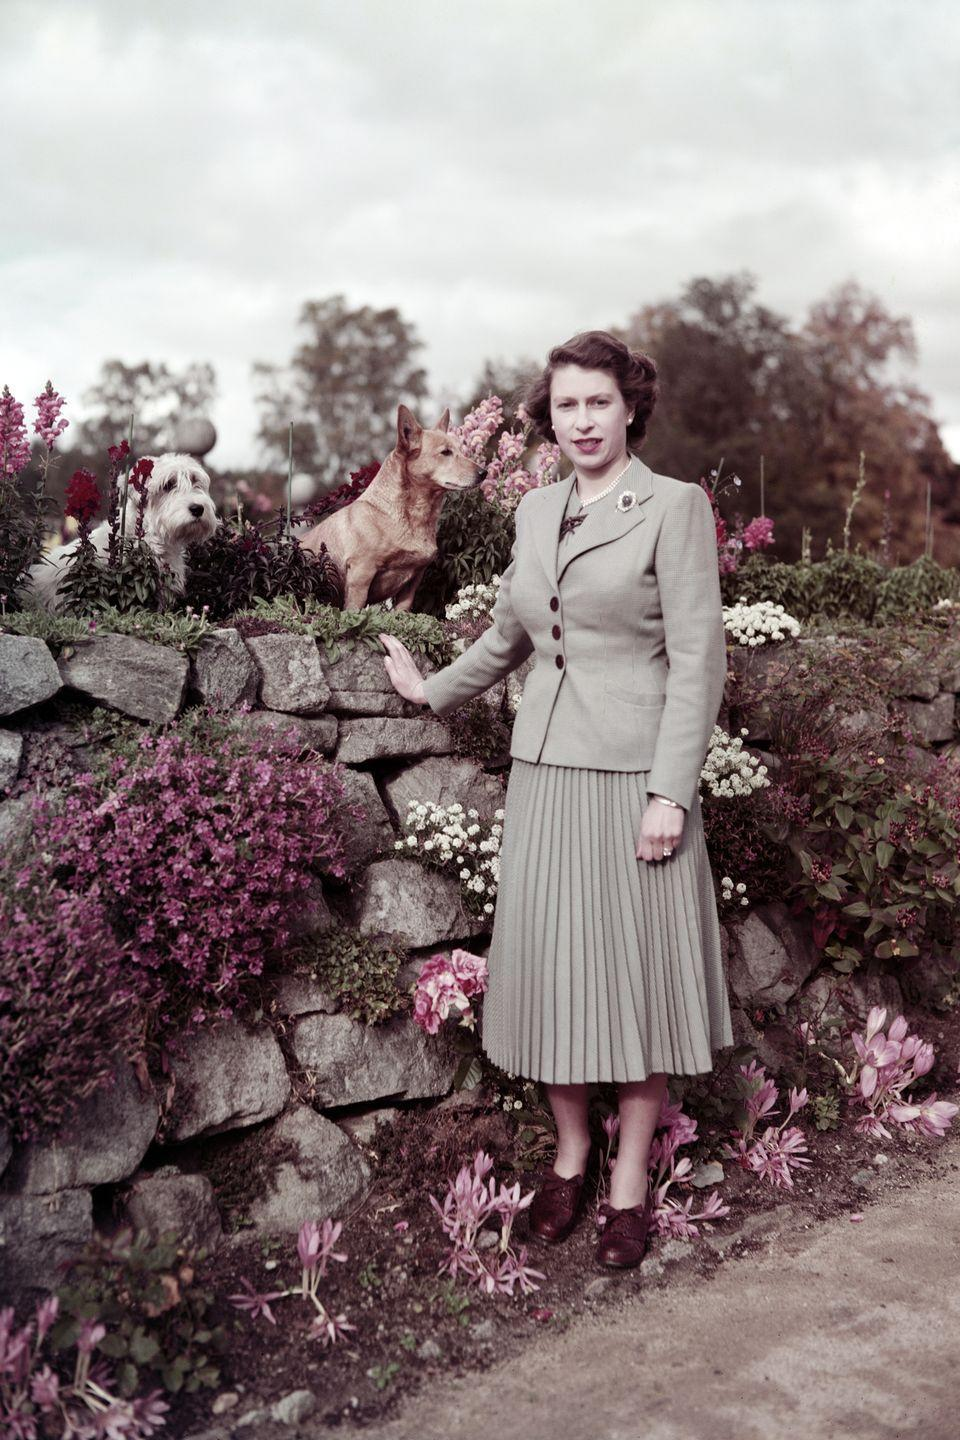 <p>Queen Elizabeth II with two dogs on the grounds at Balmoral Castle in Scotland.</p>